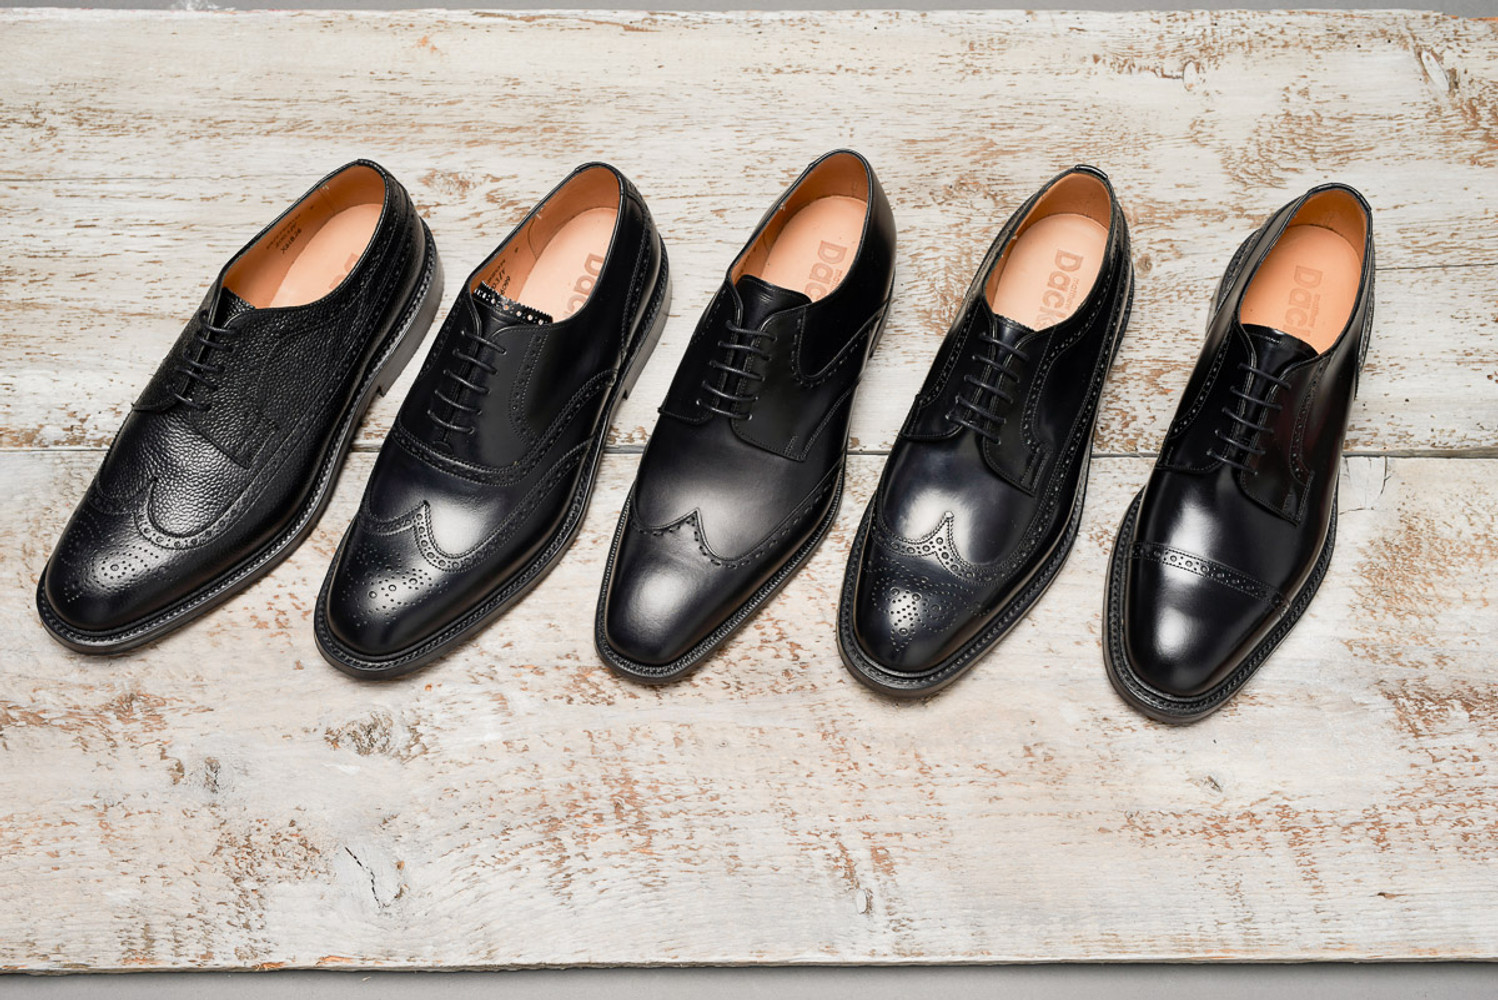 Dack's Shoes - Every Lawyer Ought to Own a Pair (or More)